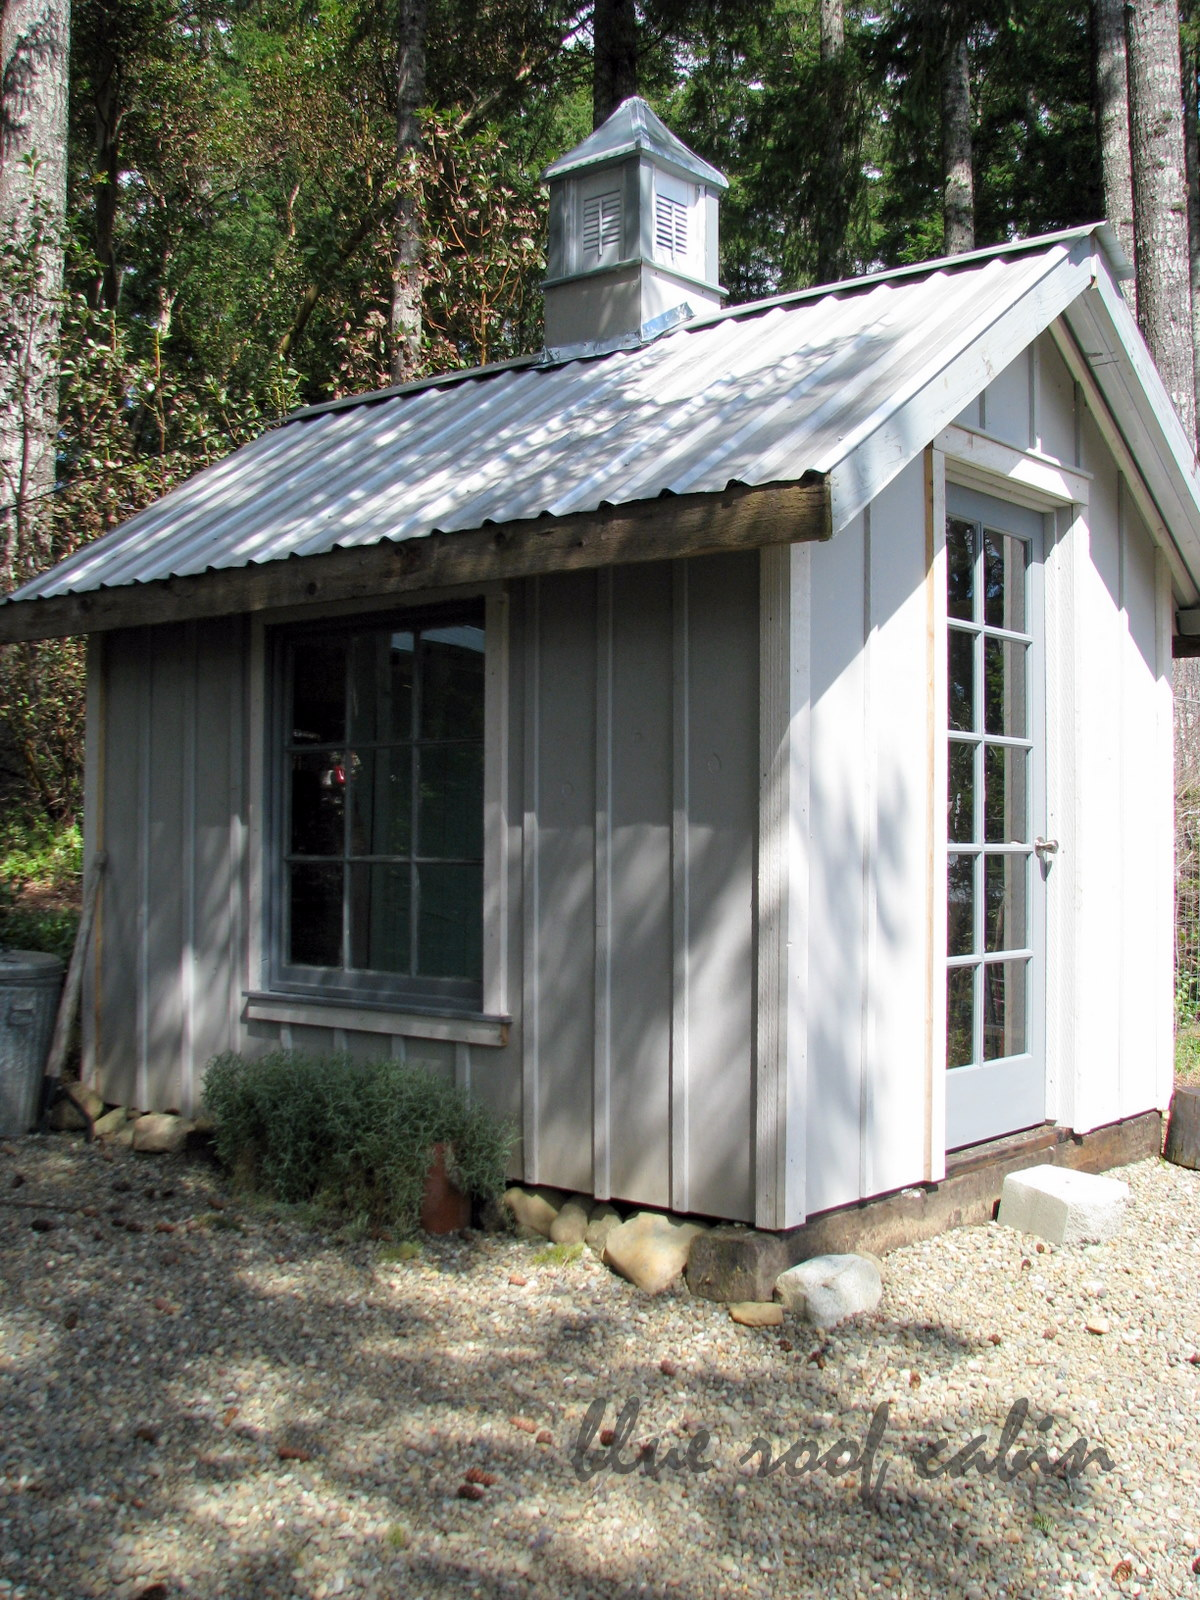 Blue Roof Cabin: The Potting Shed